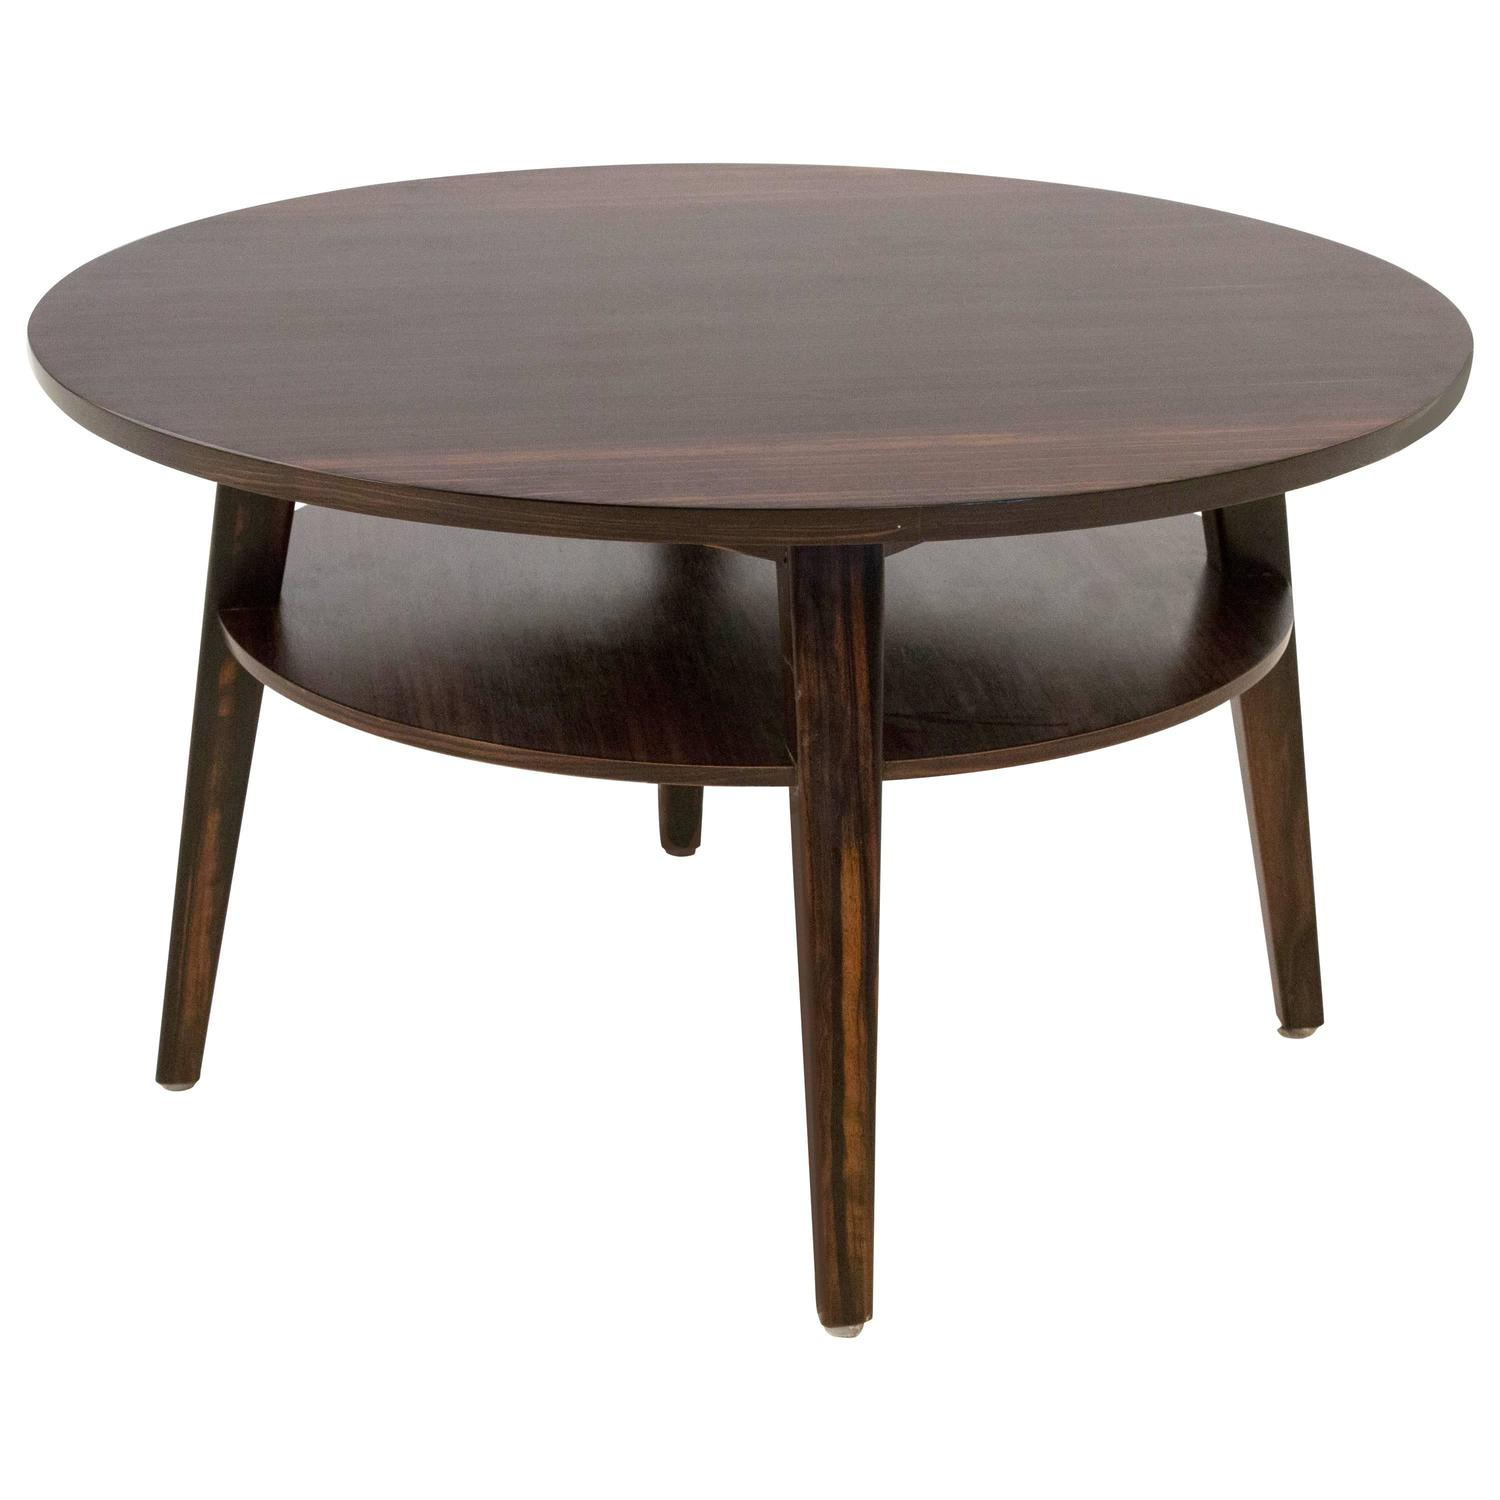 mid century modern coffee table by pander for sale at 1stdibs. Black Bedroom Furniture Sets. Home Design Ideas